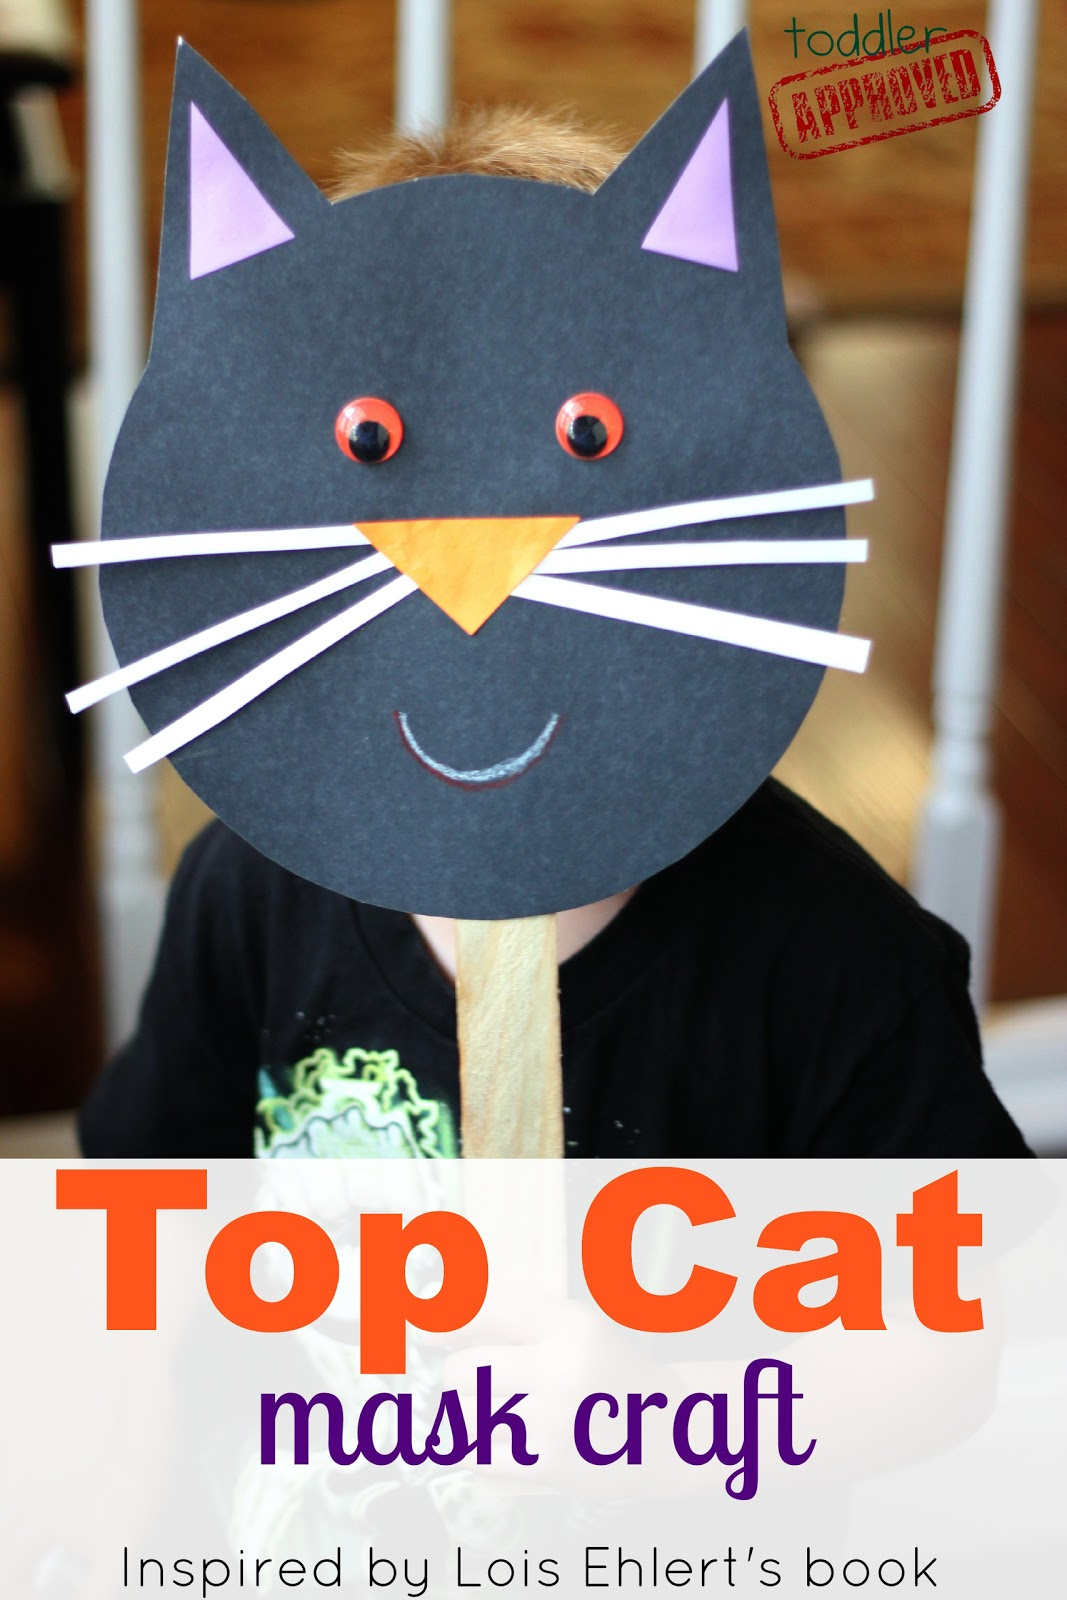 Toddler Approved Top Cat Mask Craft